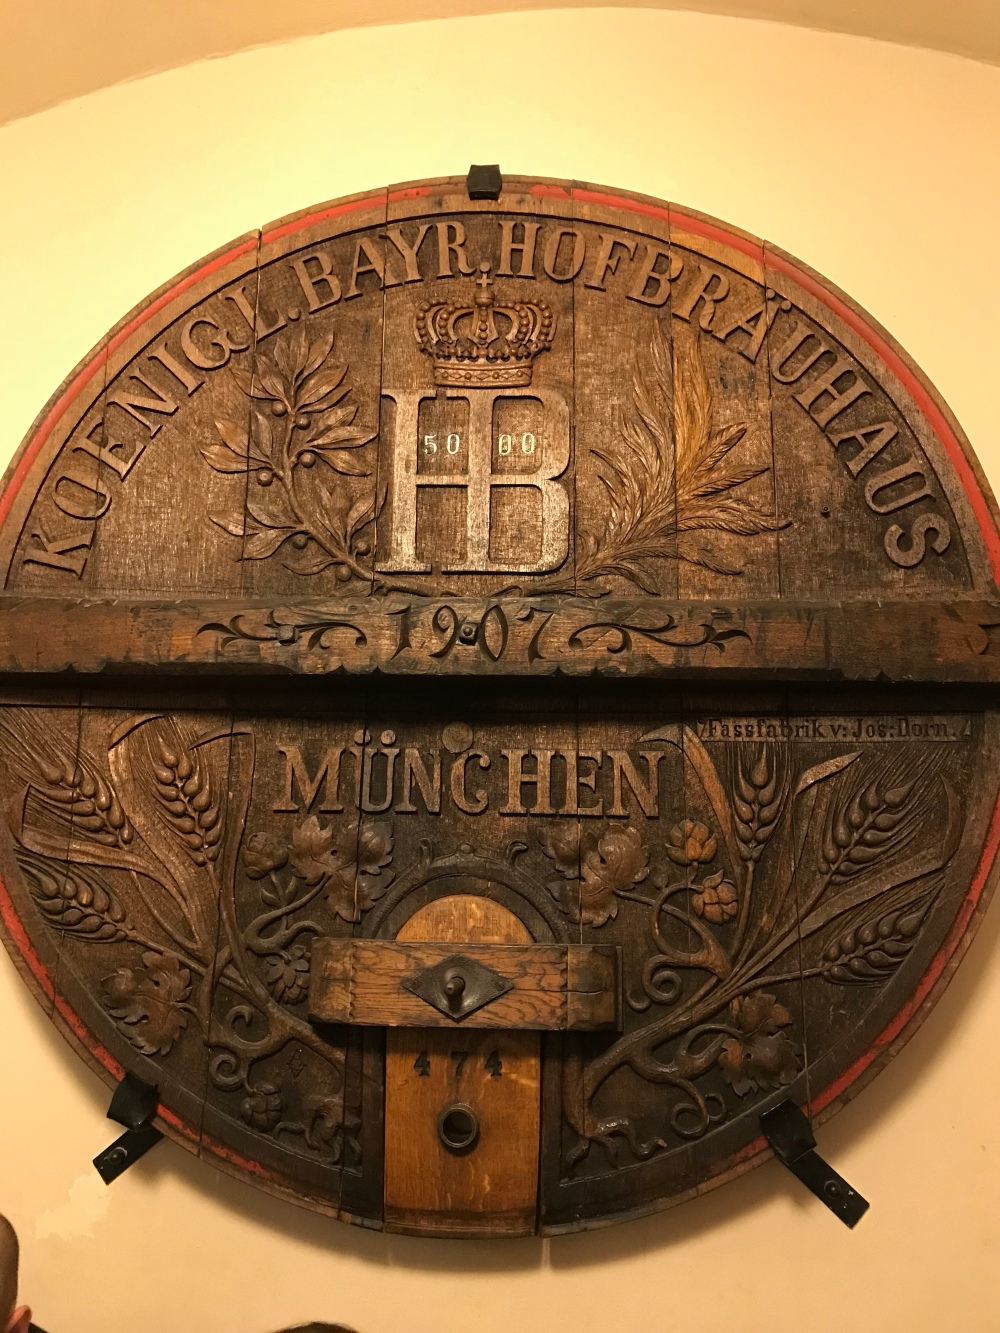 We were lucky to have gotten a table here. It's a world famous beerhaus with a notorious past. Said to be the site of Hitler's first political address.